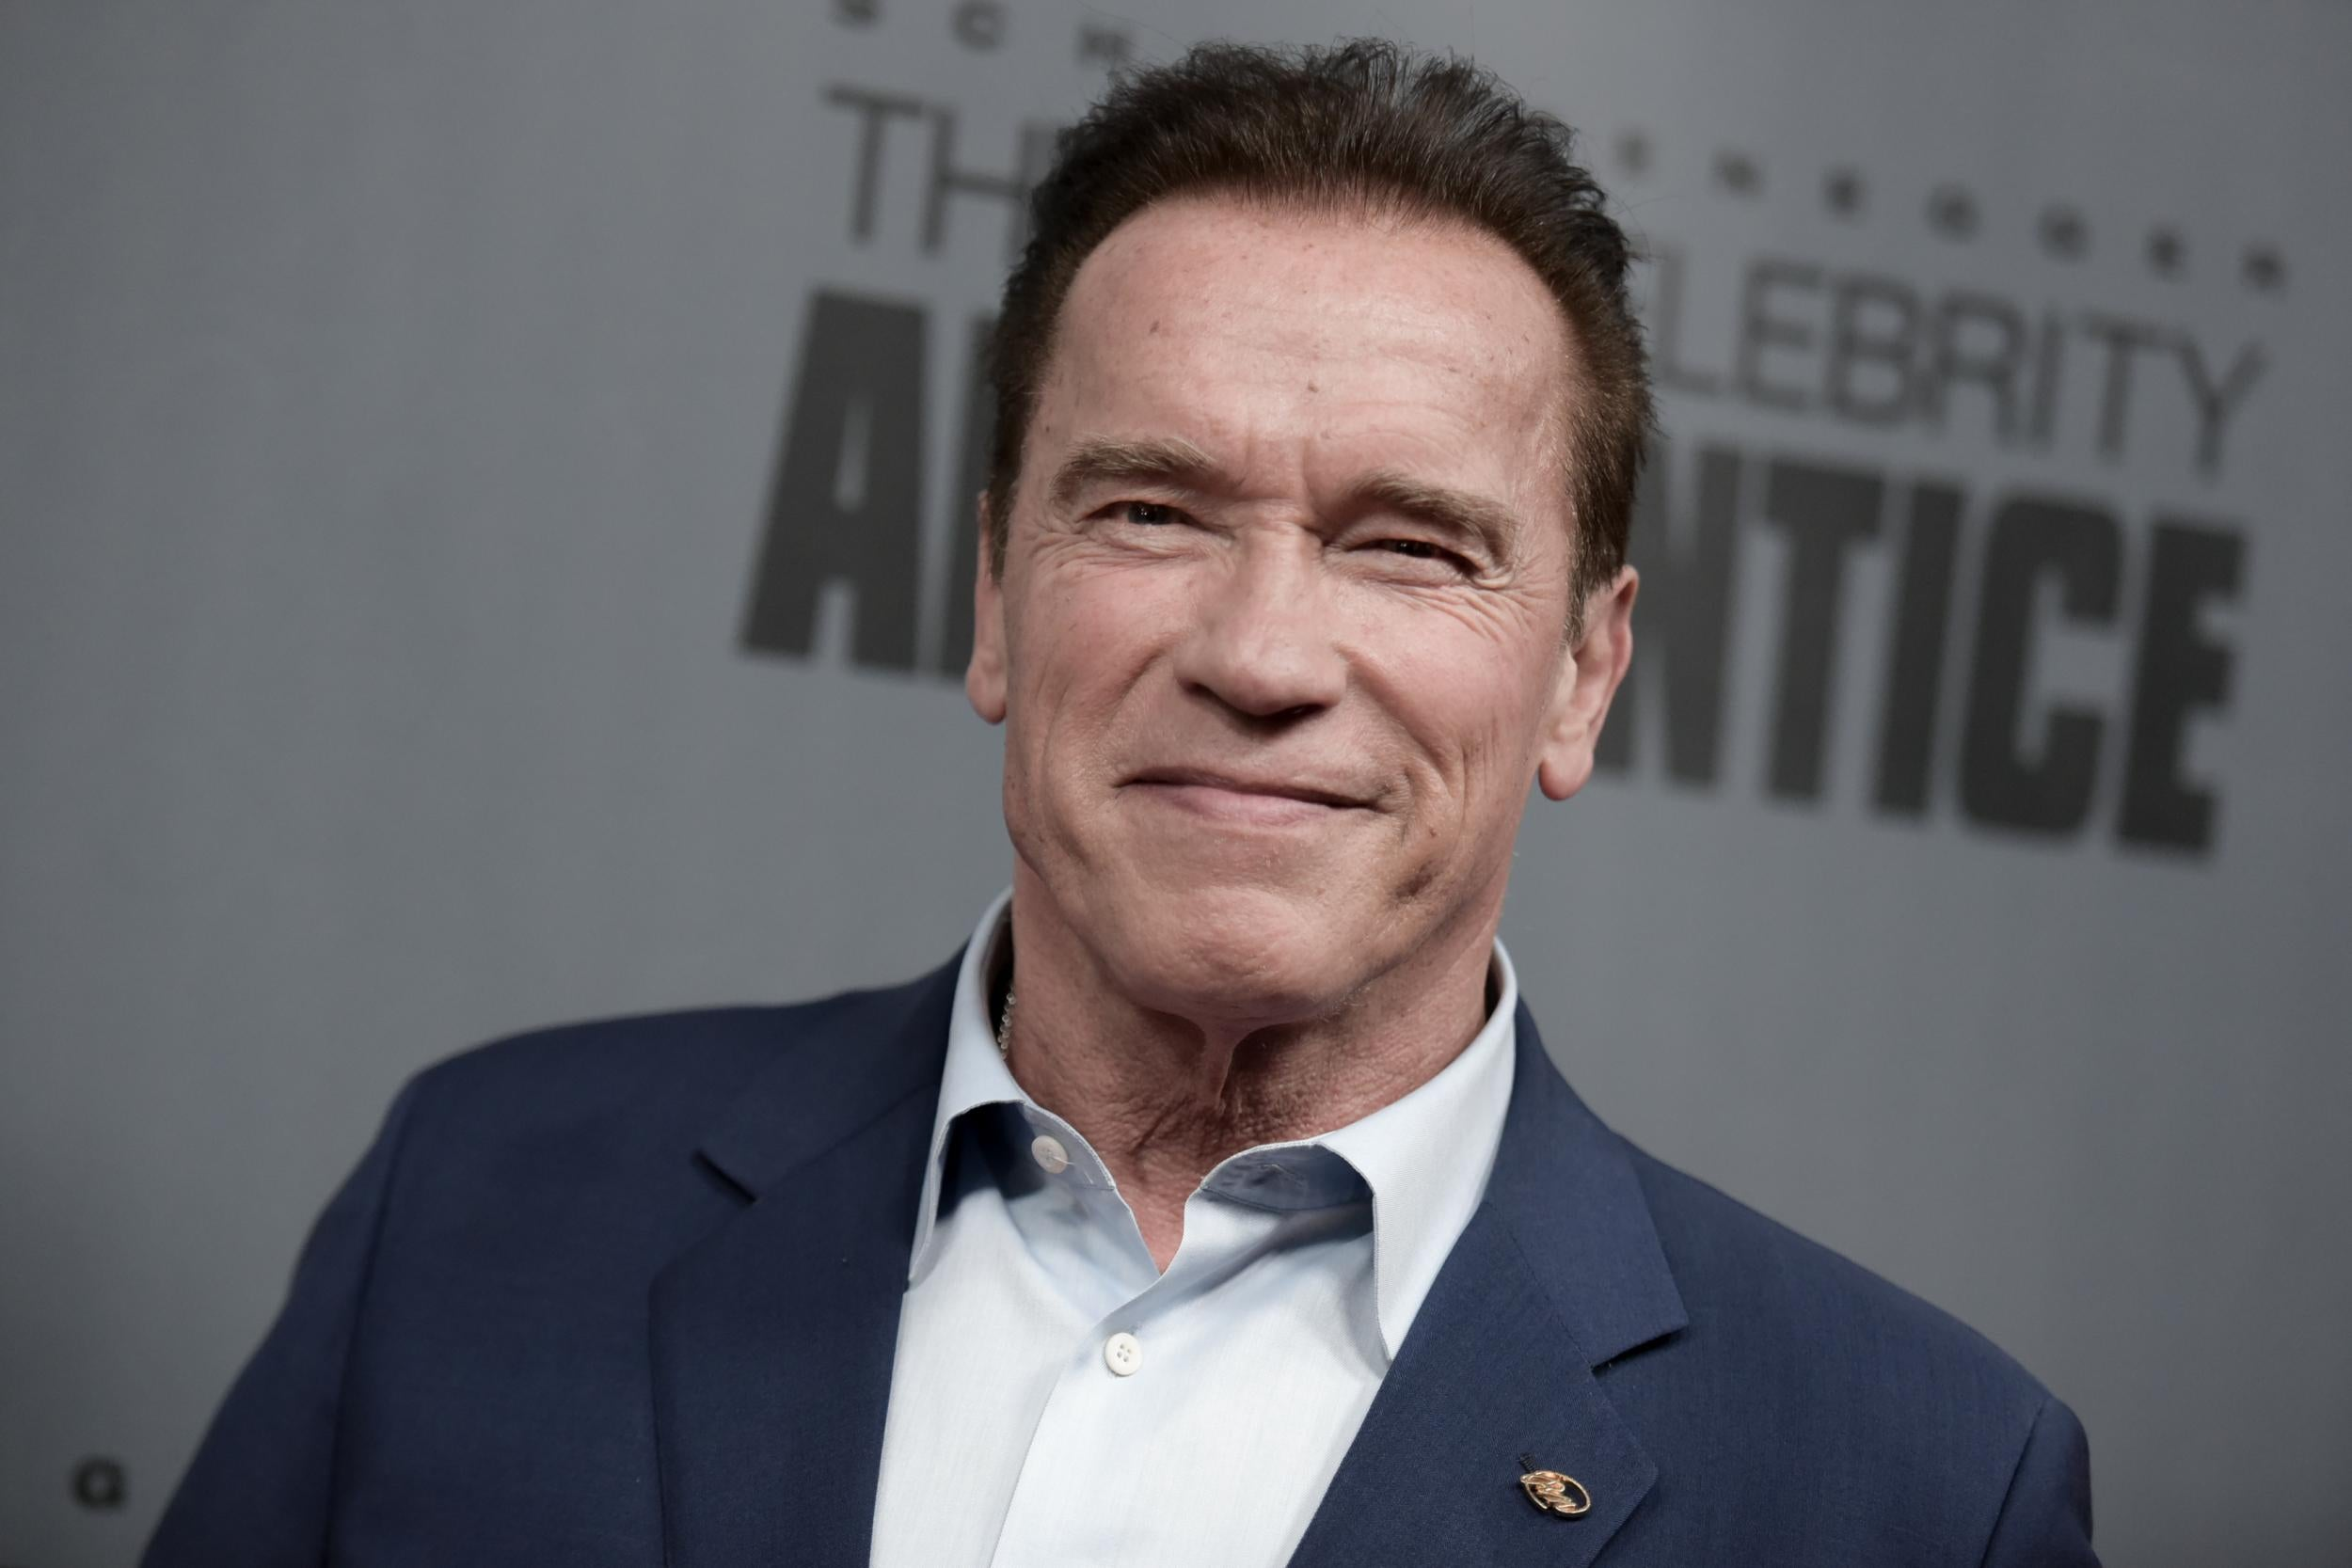 Arnold Schwarzenegger calls Trump 'little fanboy' and a 'wet noodle' after Putin news conference